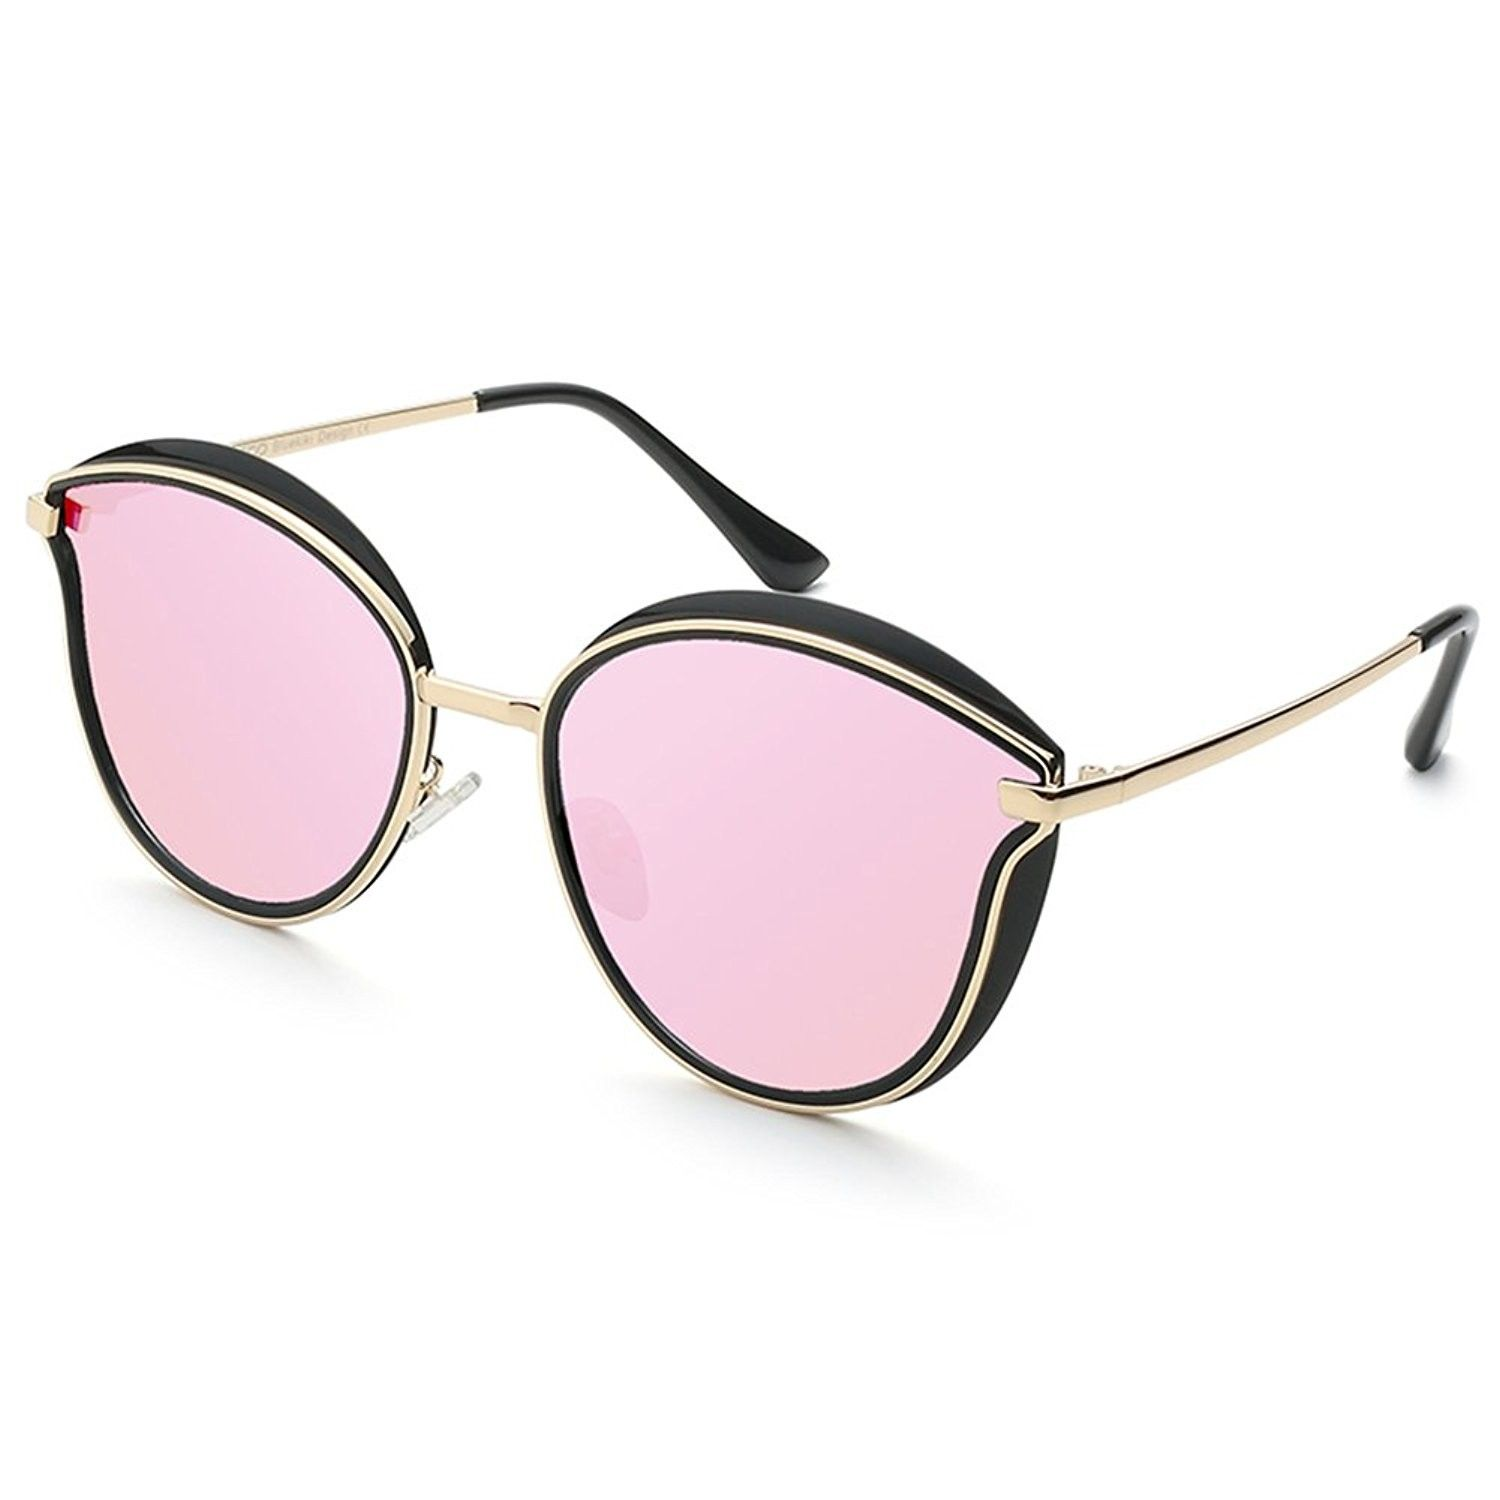 6eda982c98 Fashion Vintage Cateye Women Sunglasses Designer Oversized Mirror by - Rose  Gold - CV17XE2G682 - Women s Sunglasses